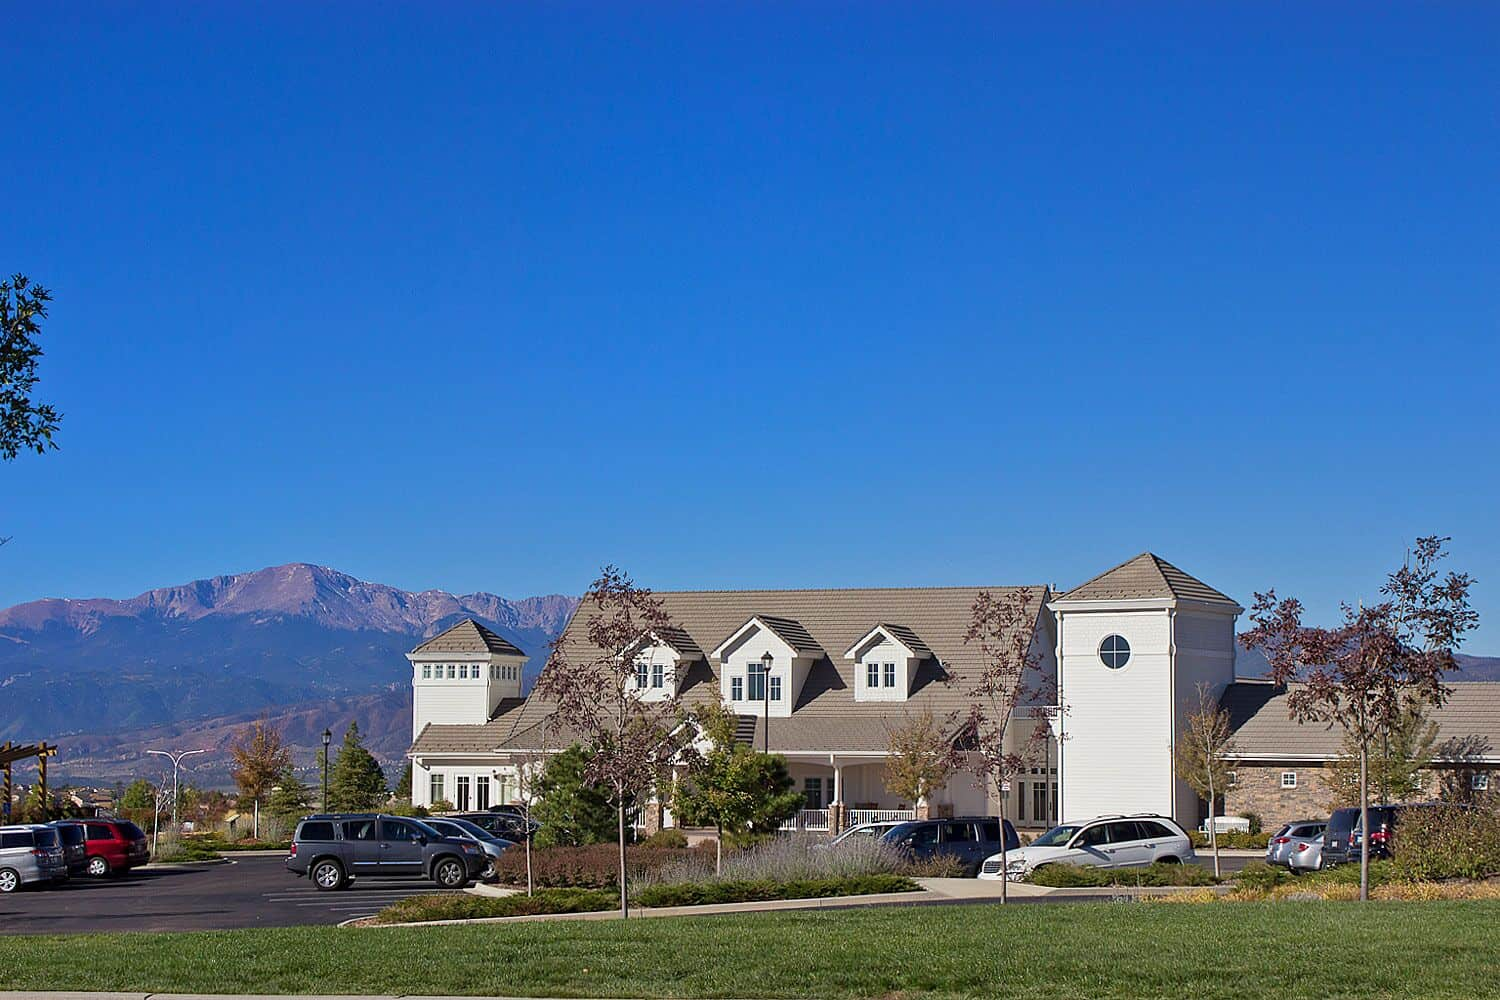 Community Center with Pikes Peak Views